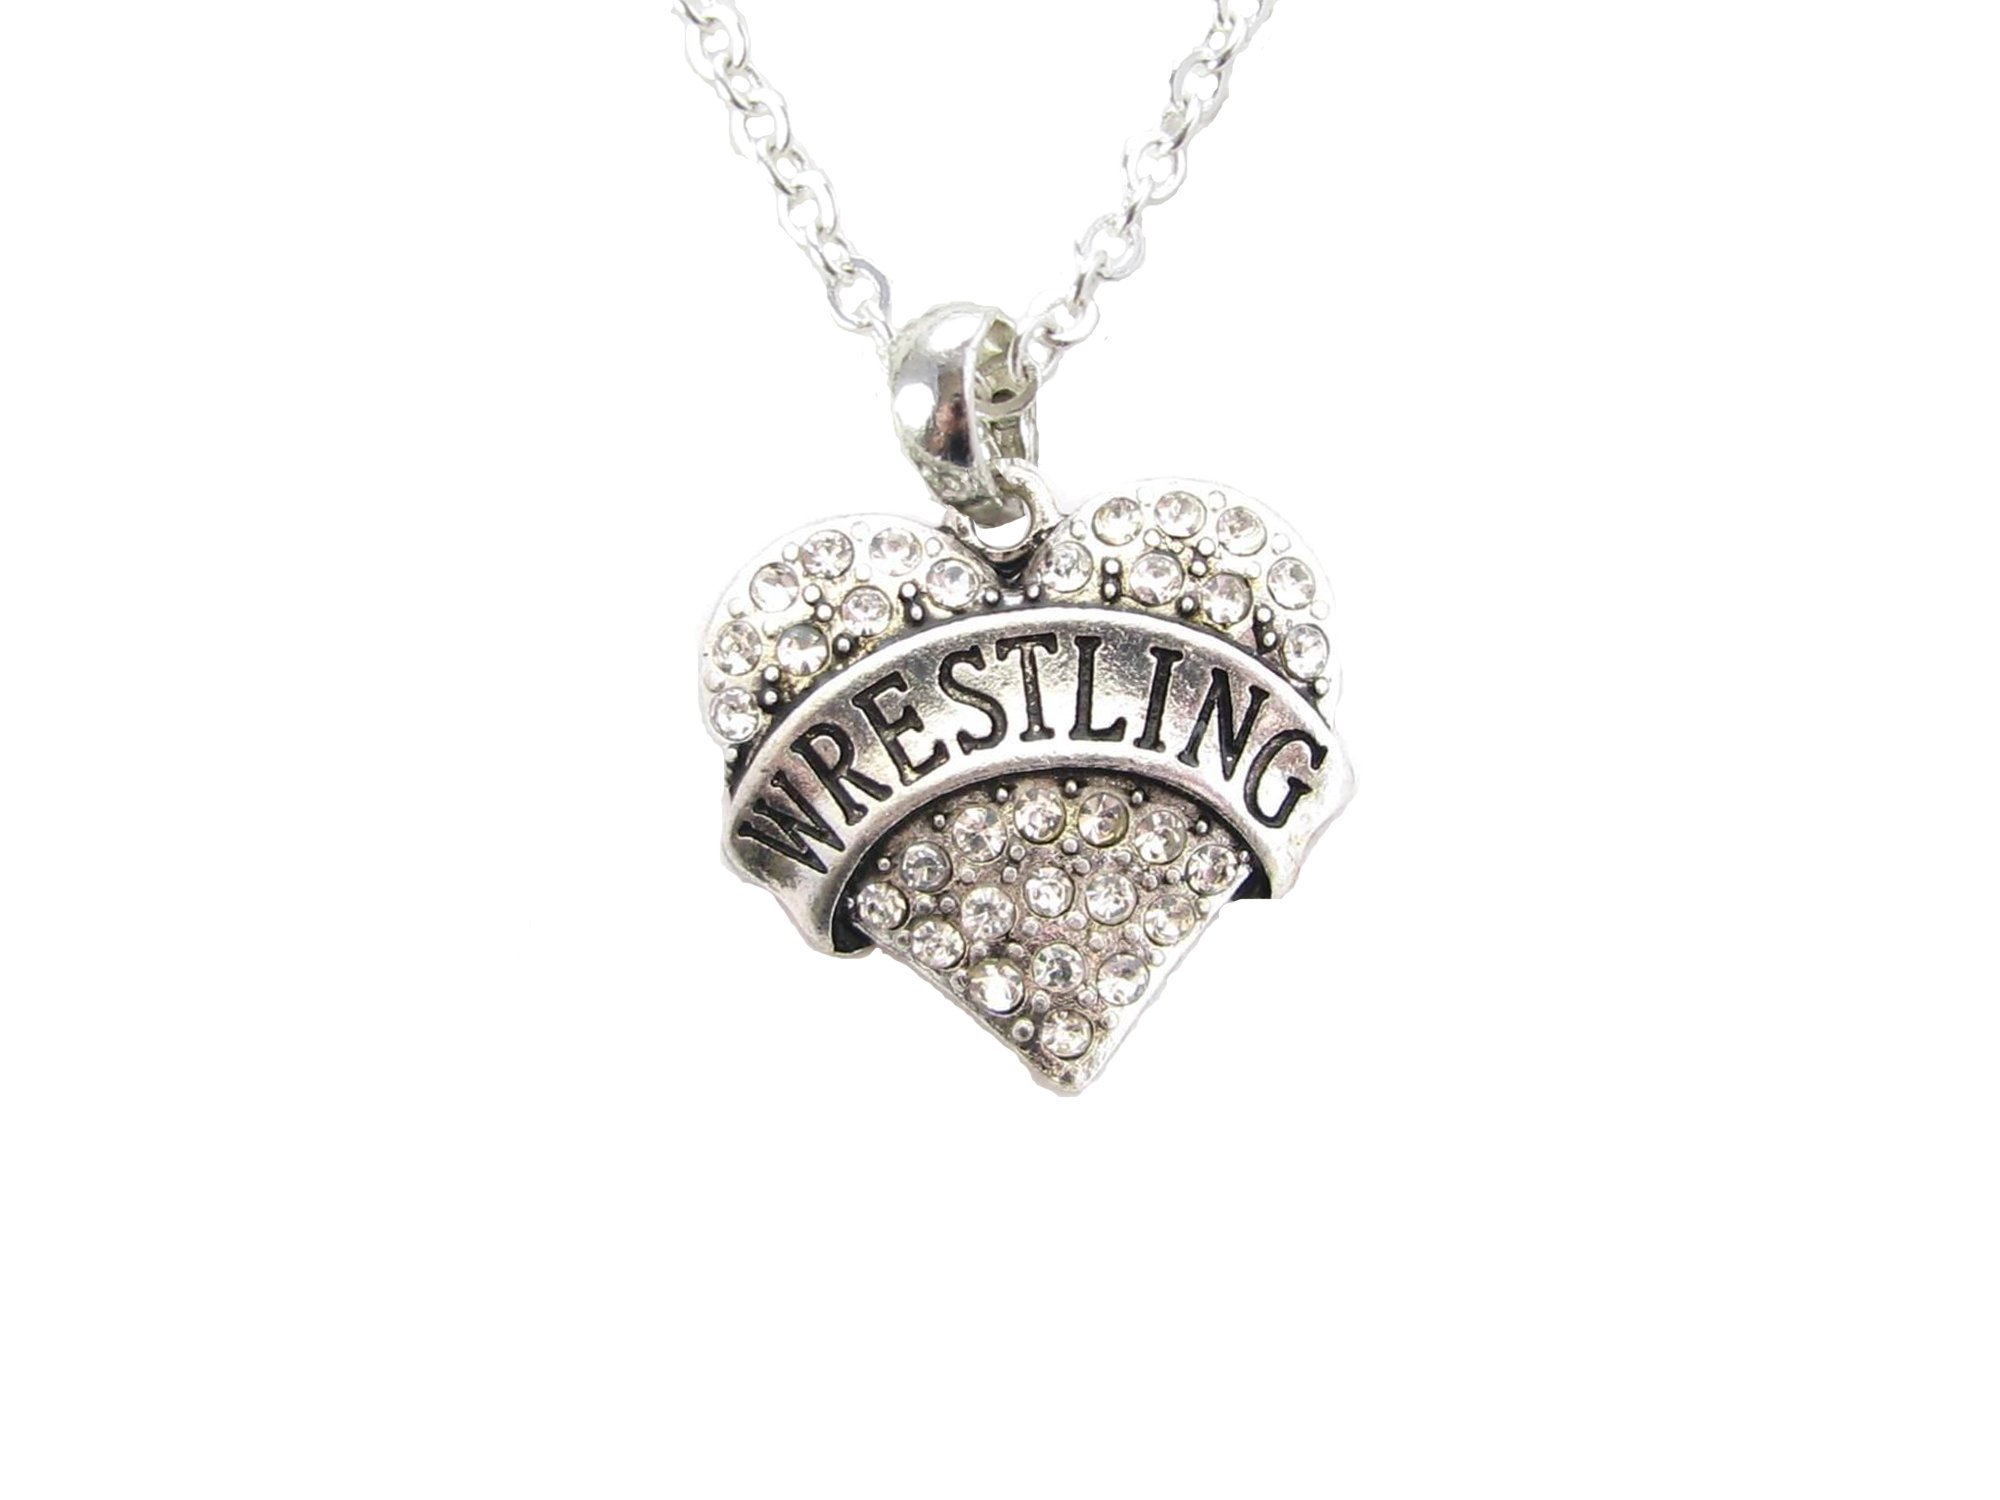 Sports Accessory Store Wrestling Silver Chain Necklace Clear Crystal Heart Pendant Jewelry